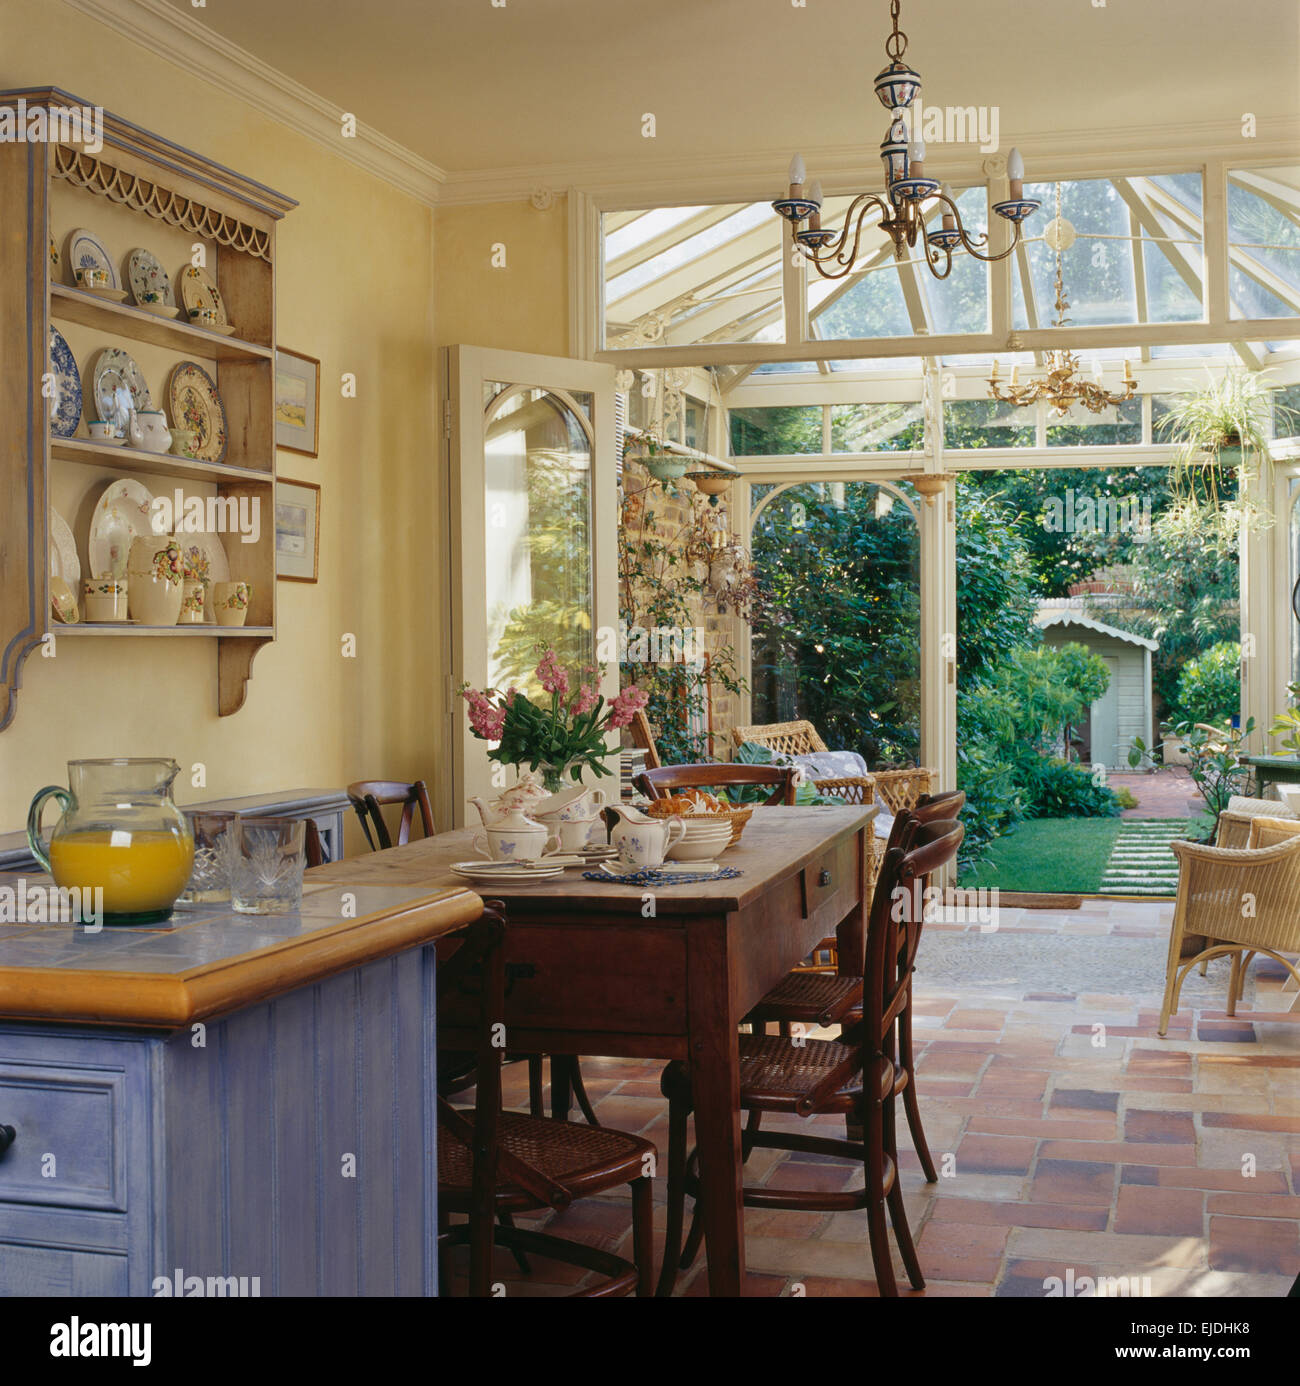 Kitchens Breakfast Dining Rooms Photo Gallery: Simple Wooden Table And Chairs In Country Kitchen Dining